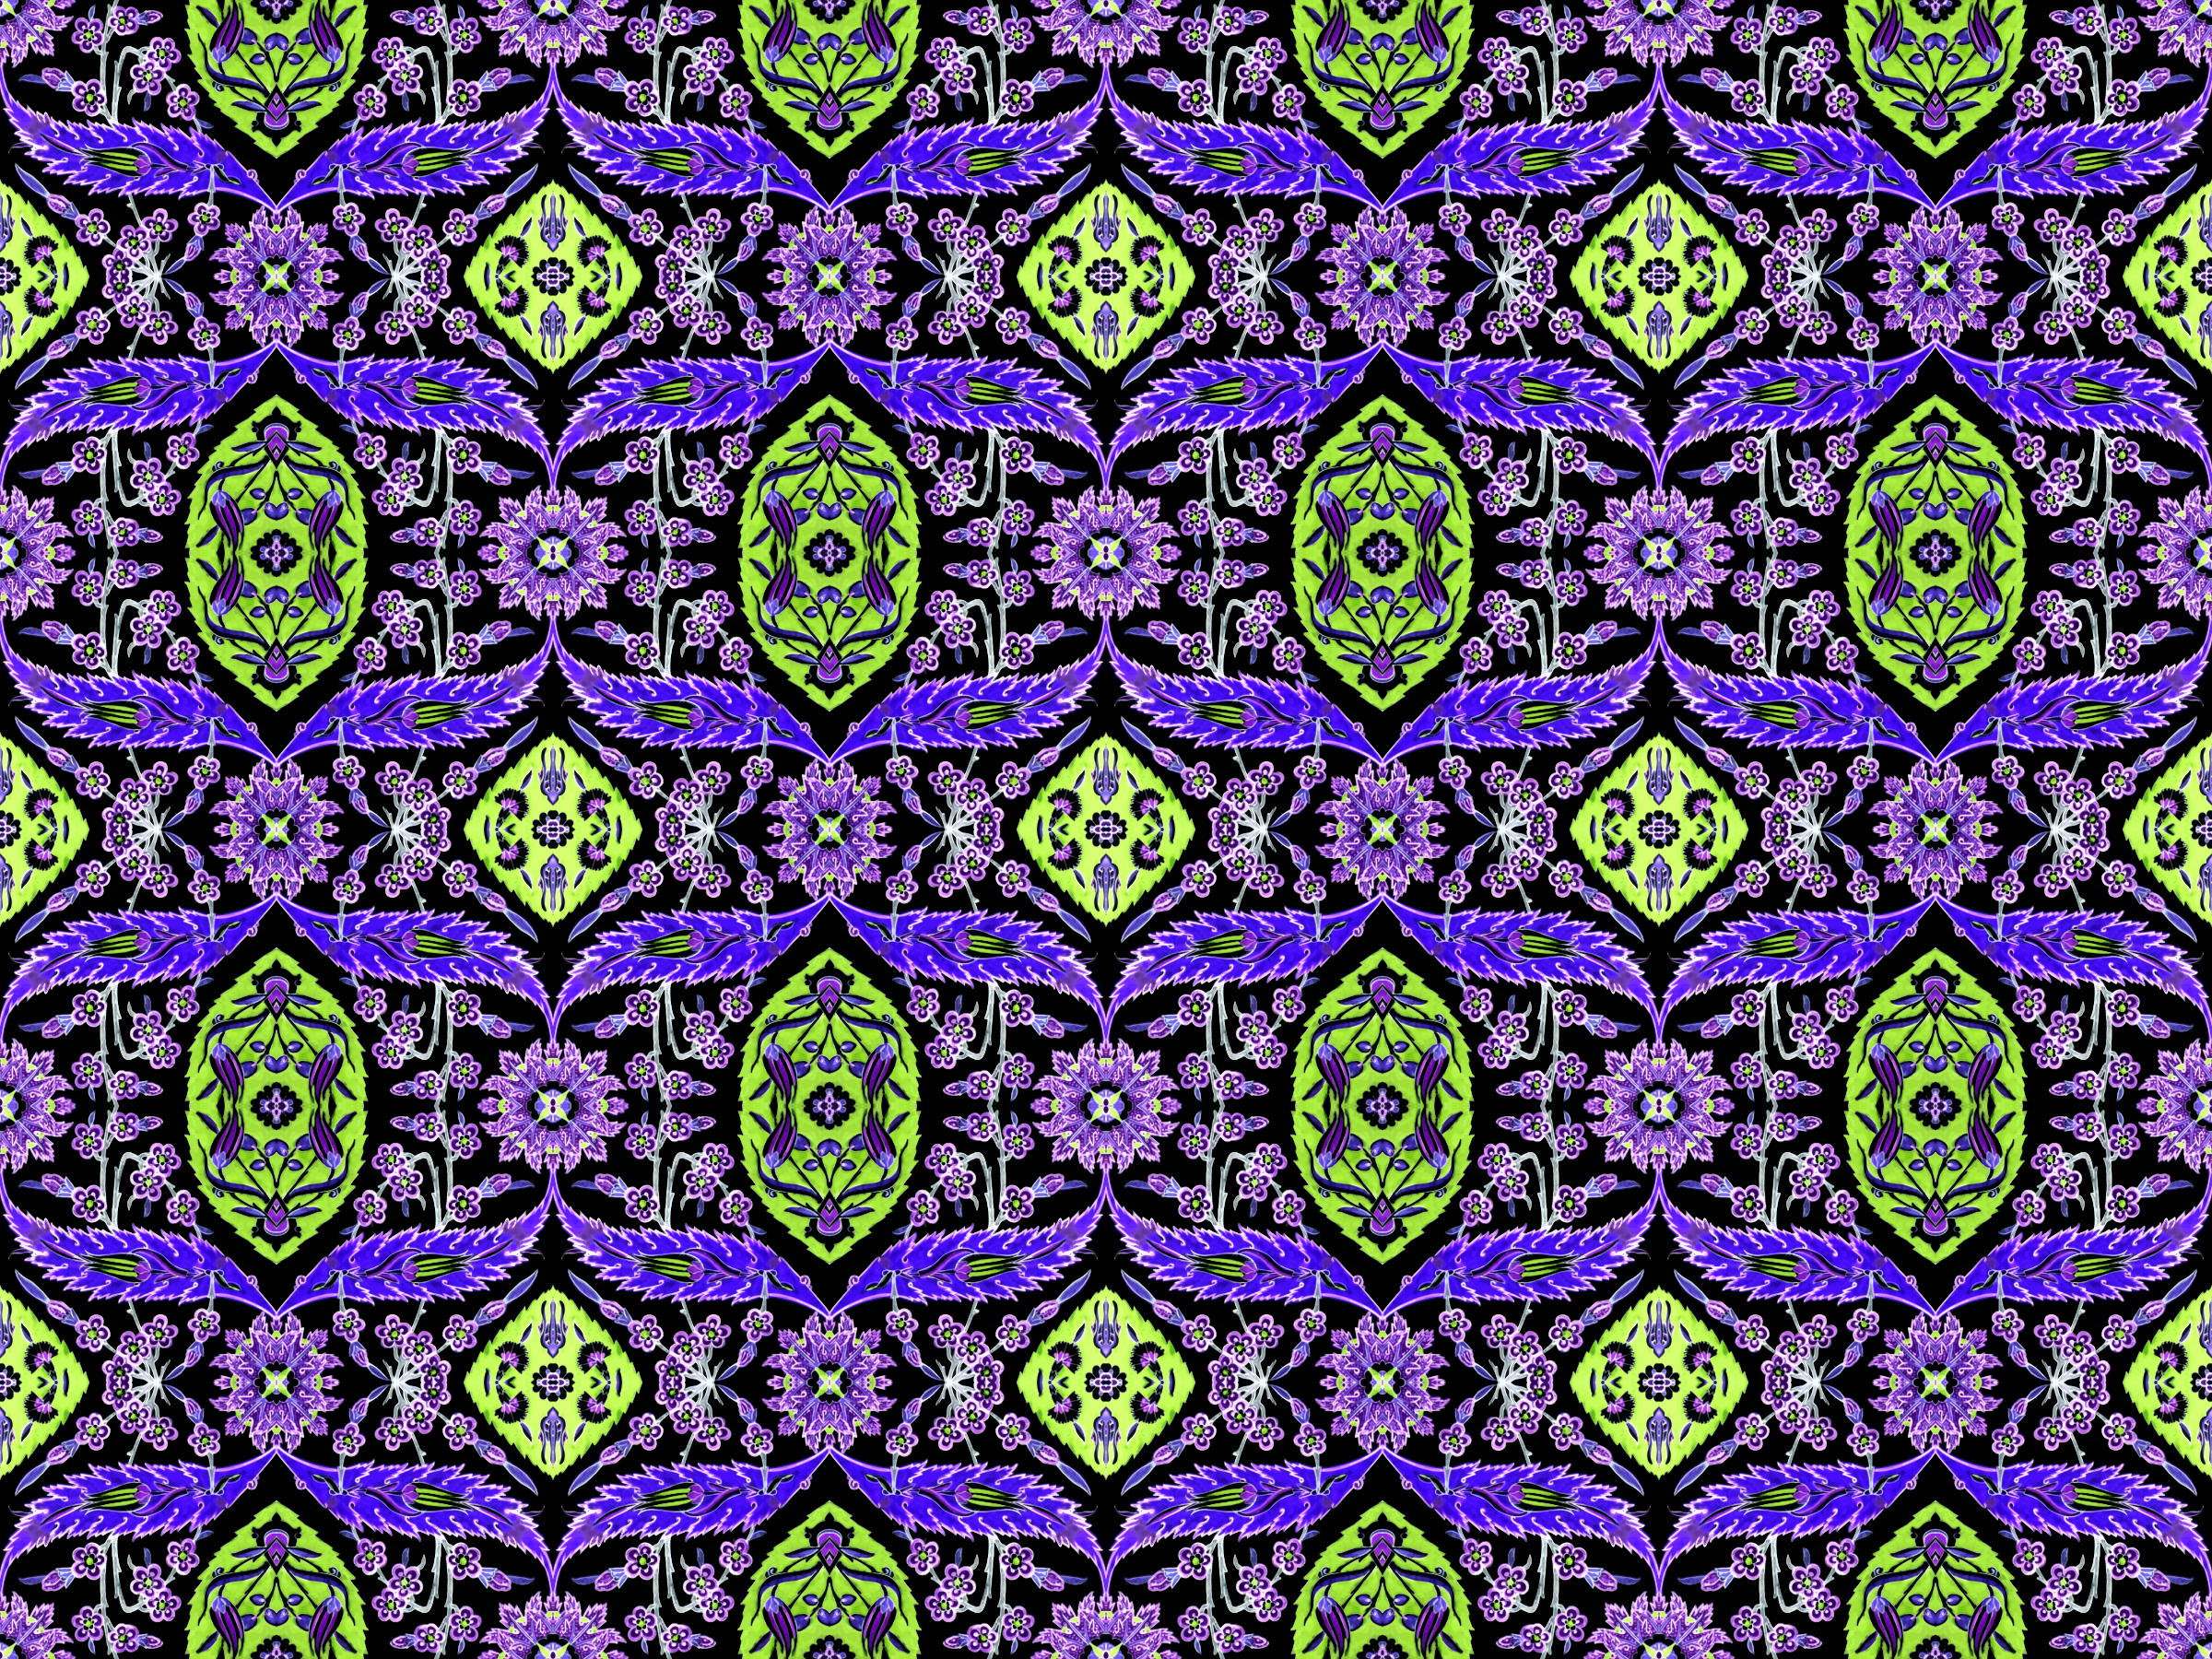 Floral pattern 6 (colour 6) by Firkin